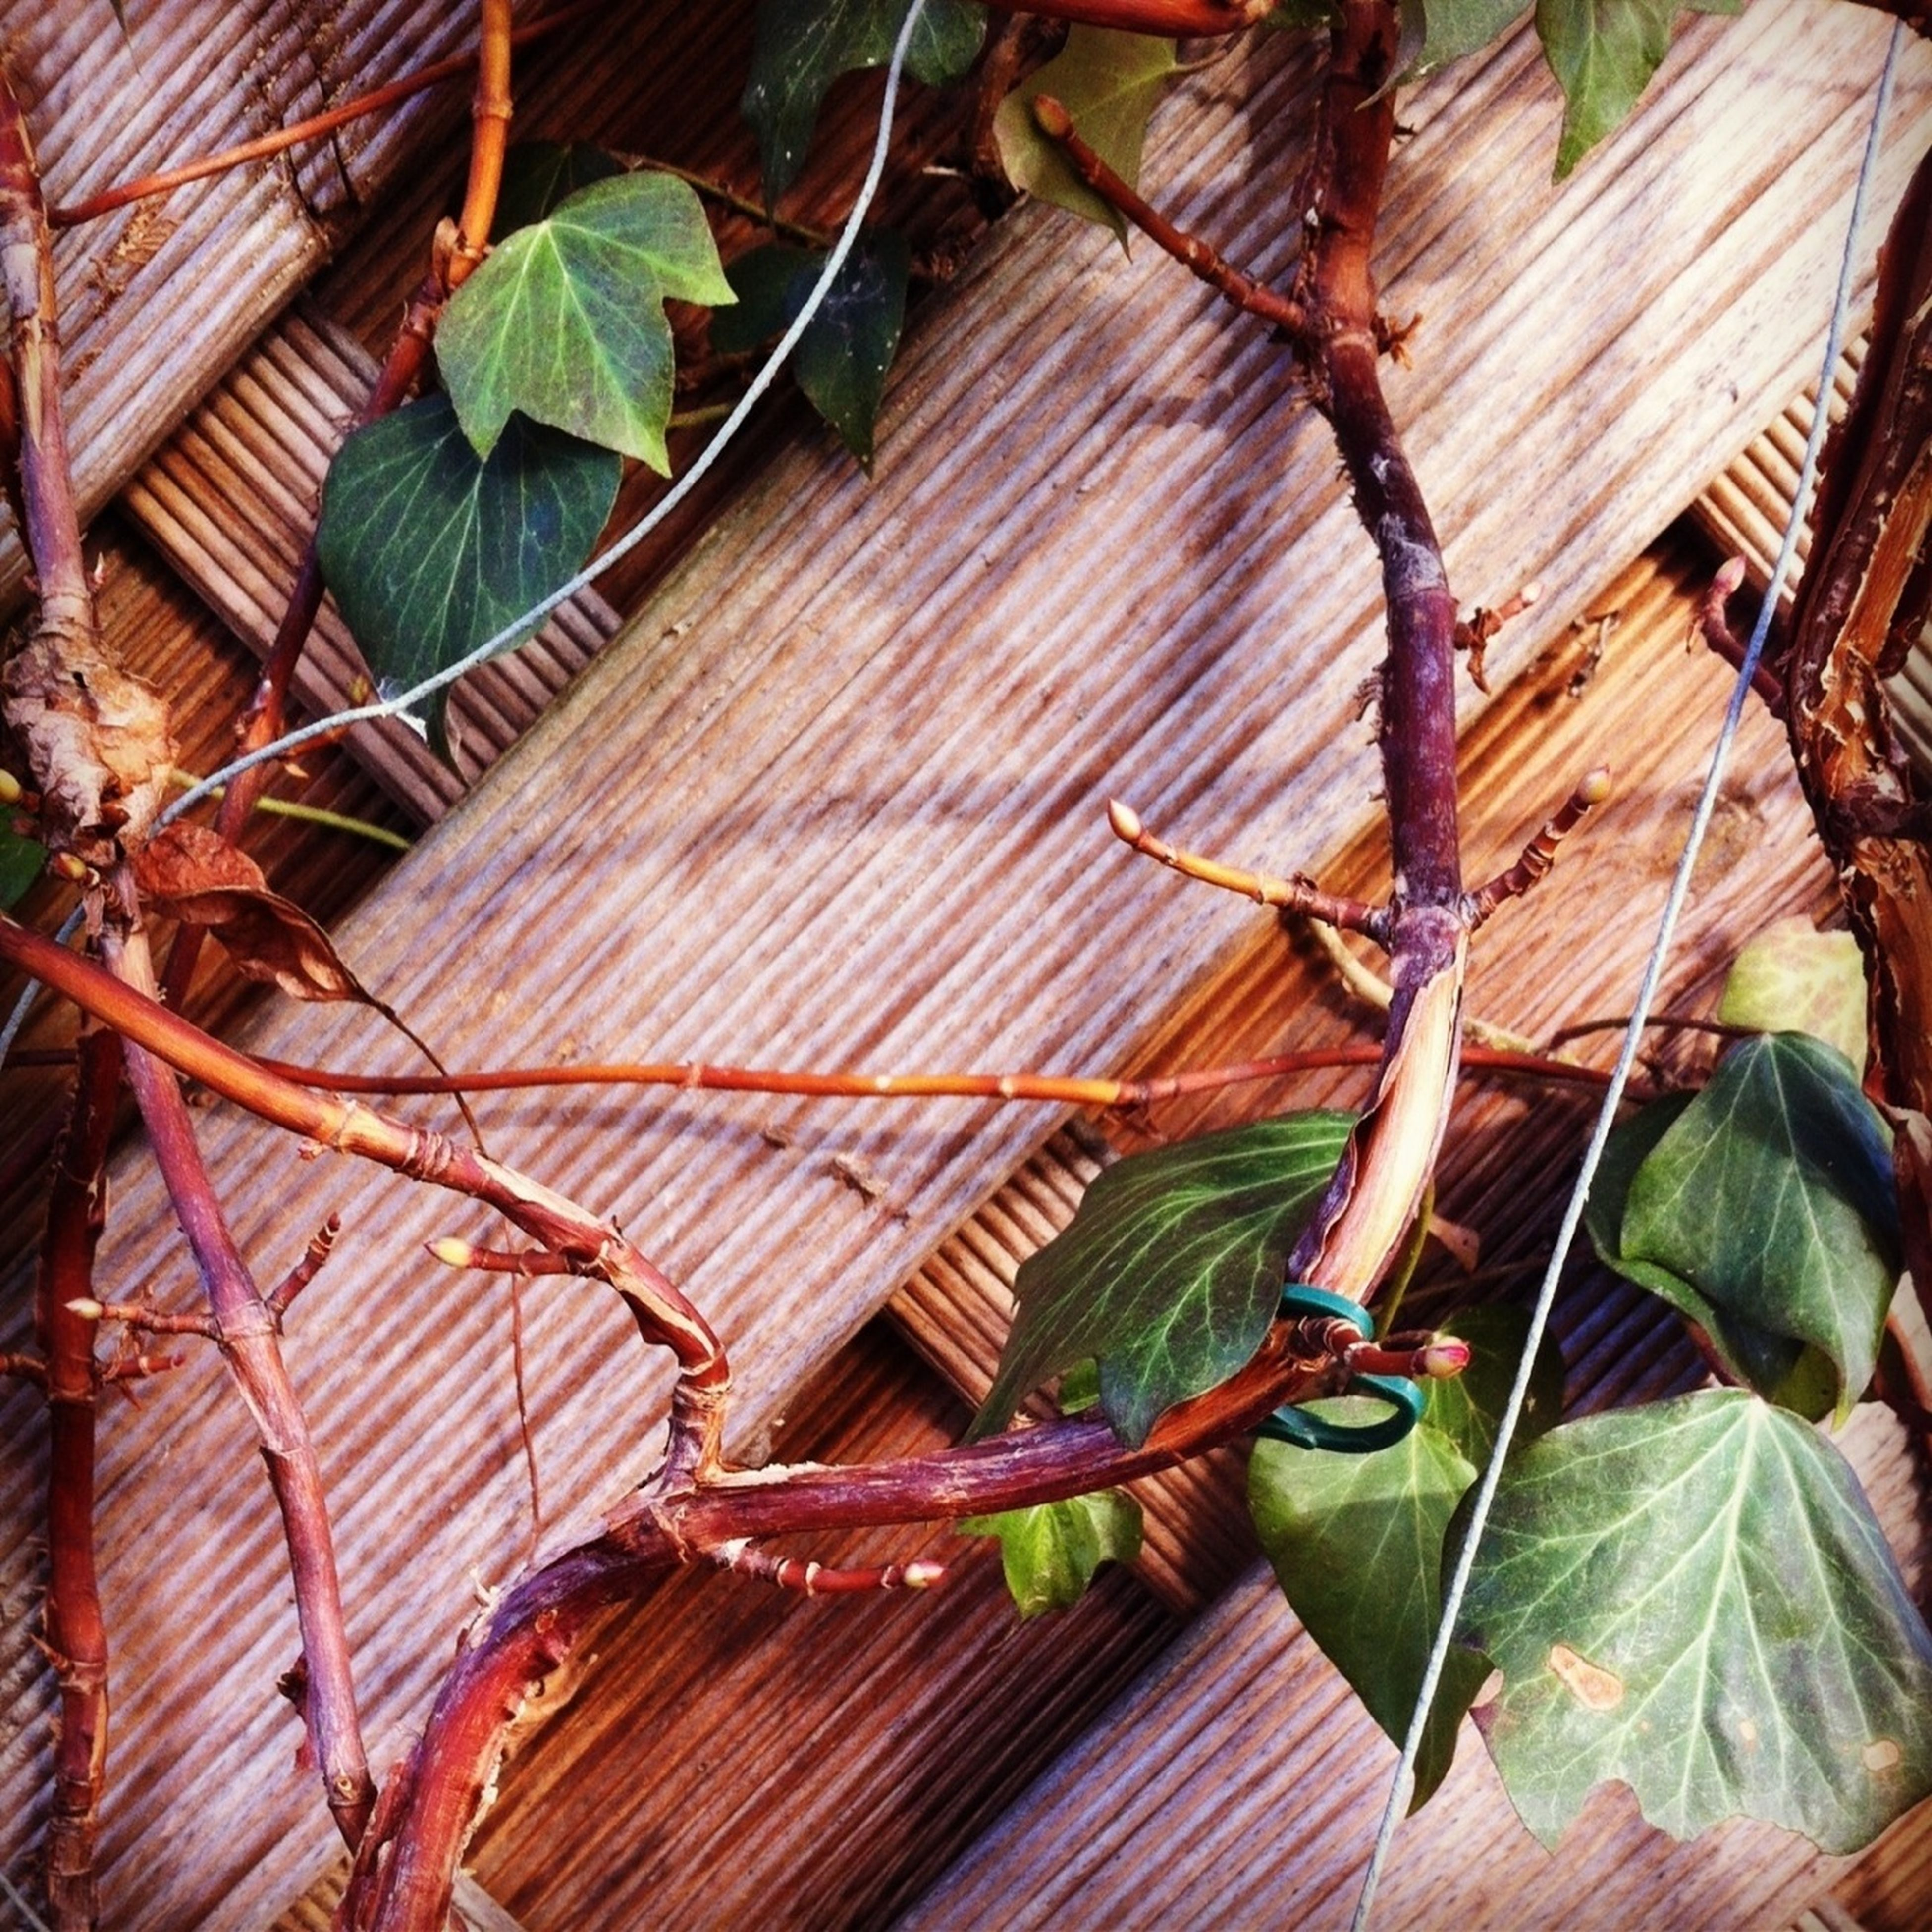 leaf, branch, plant, growth, green color, wood - material, nature, close-up, tree, twig, day, outdoors, no people, sunlight, high angle view, natural pattern, wood, tree trunk, hanging, green